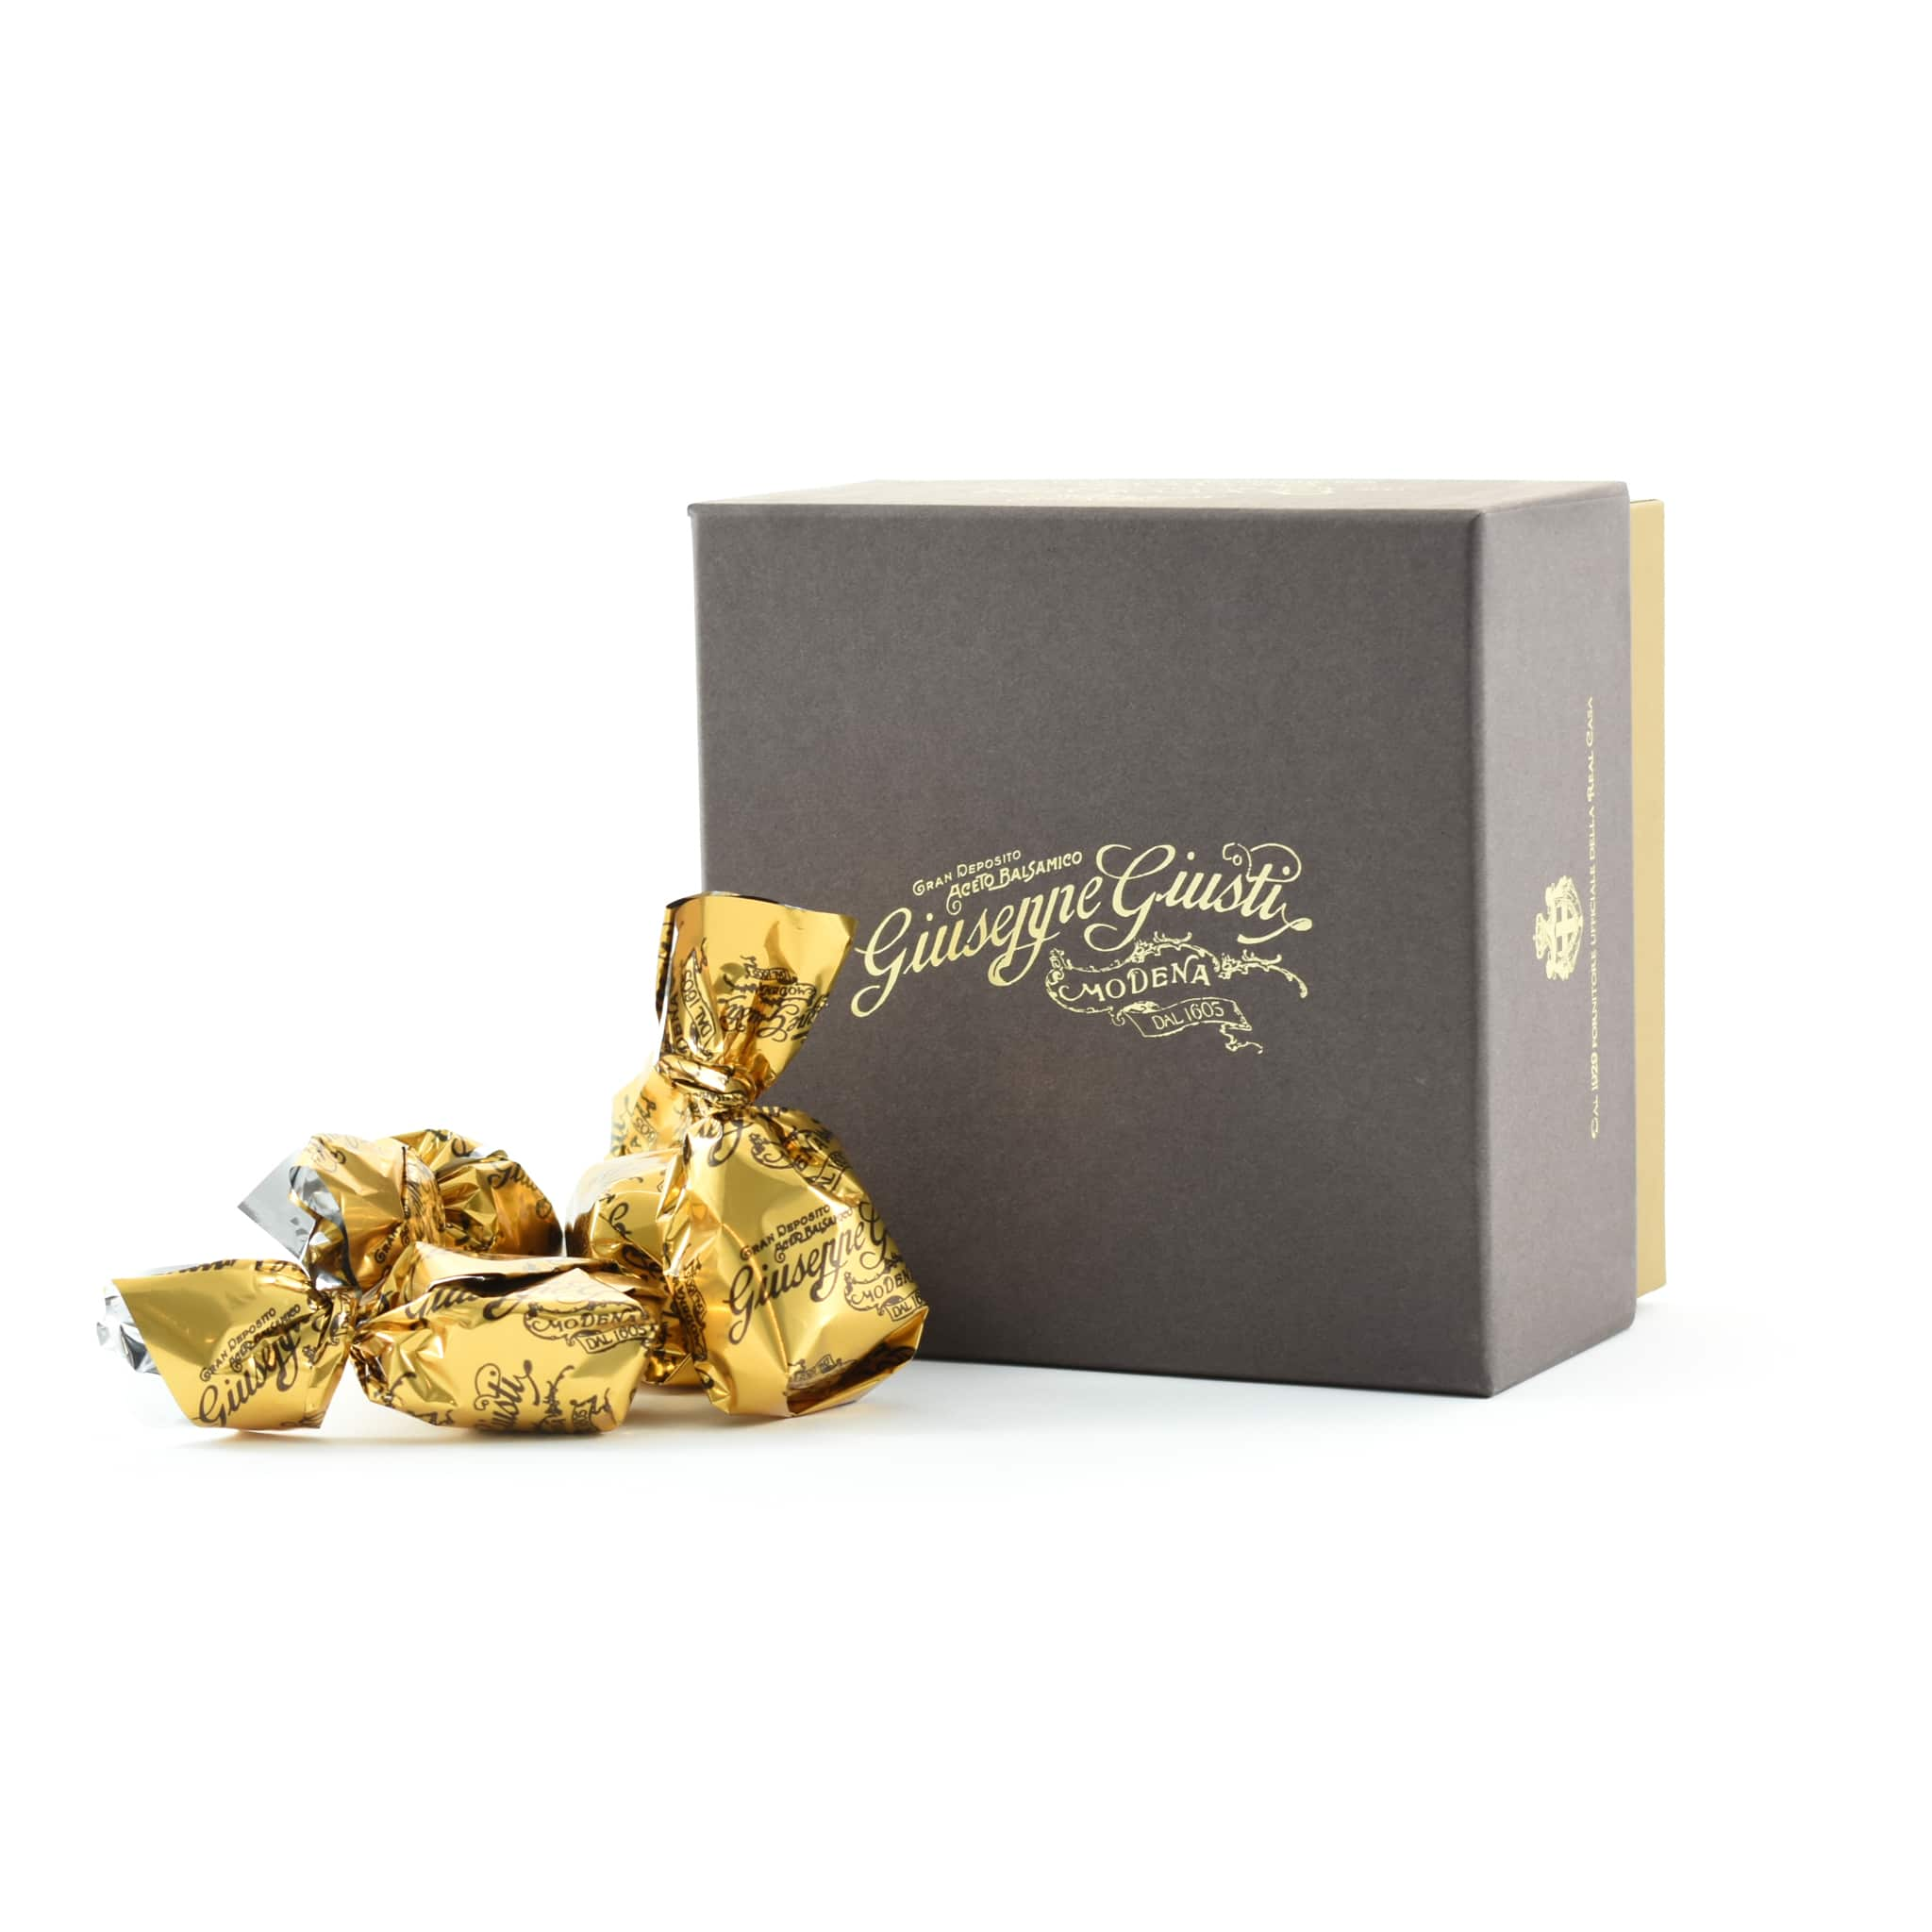 Giuseppe Giusti Chocolates with Balsamic Vinegar of Modena IGP 250g